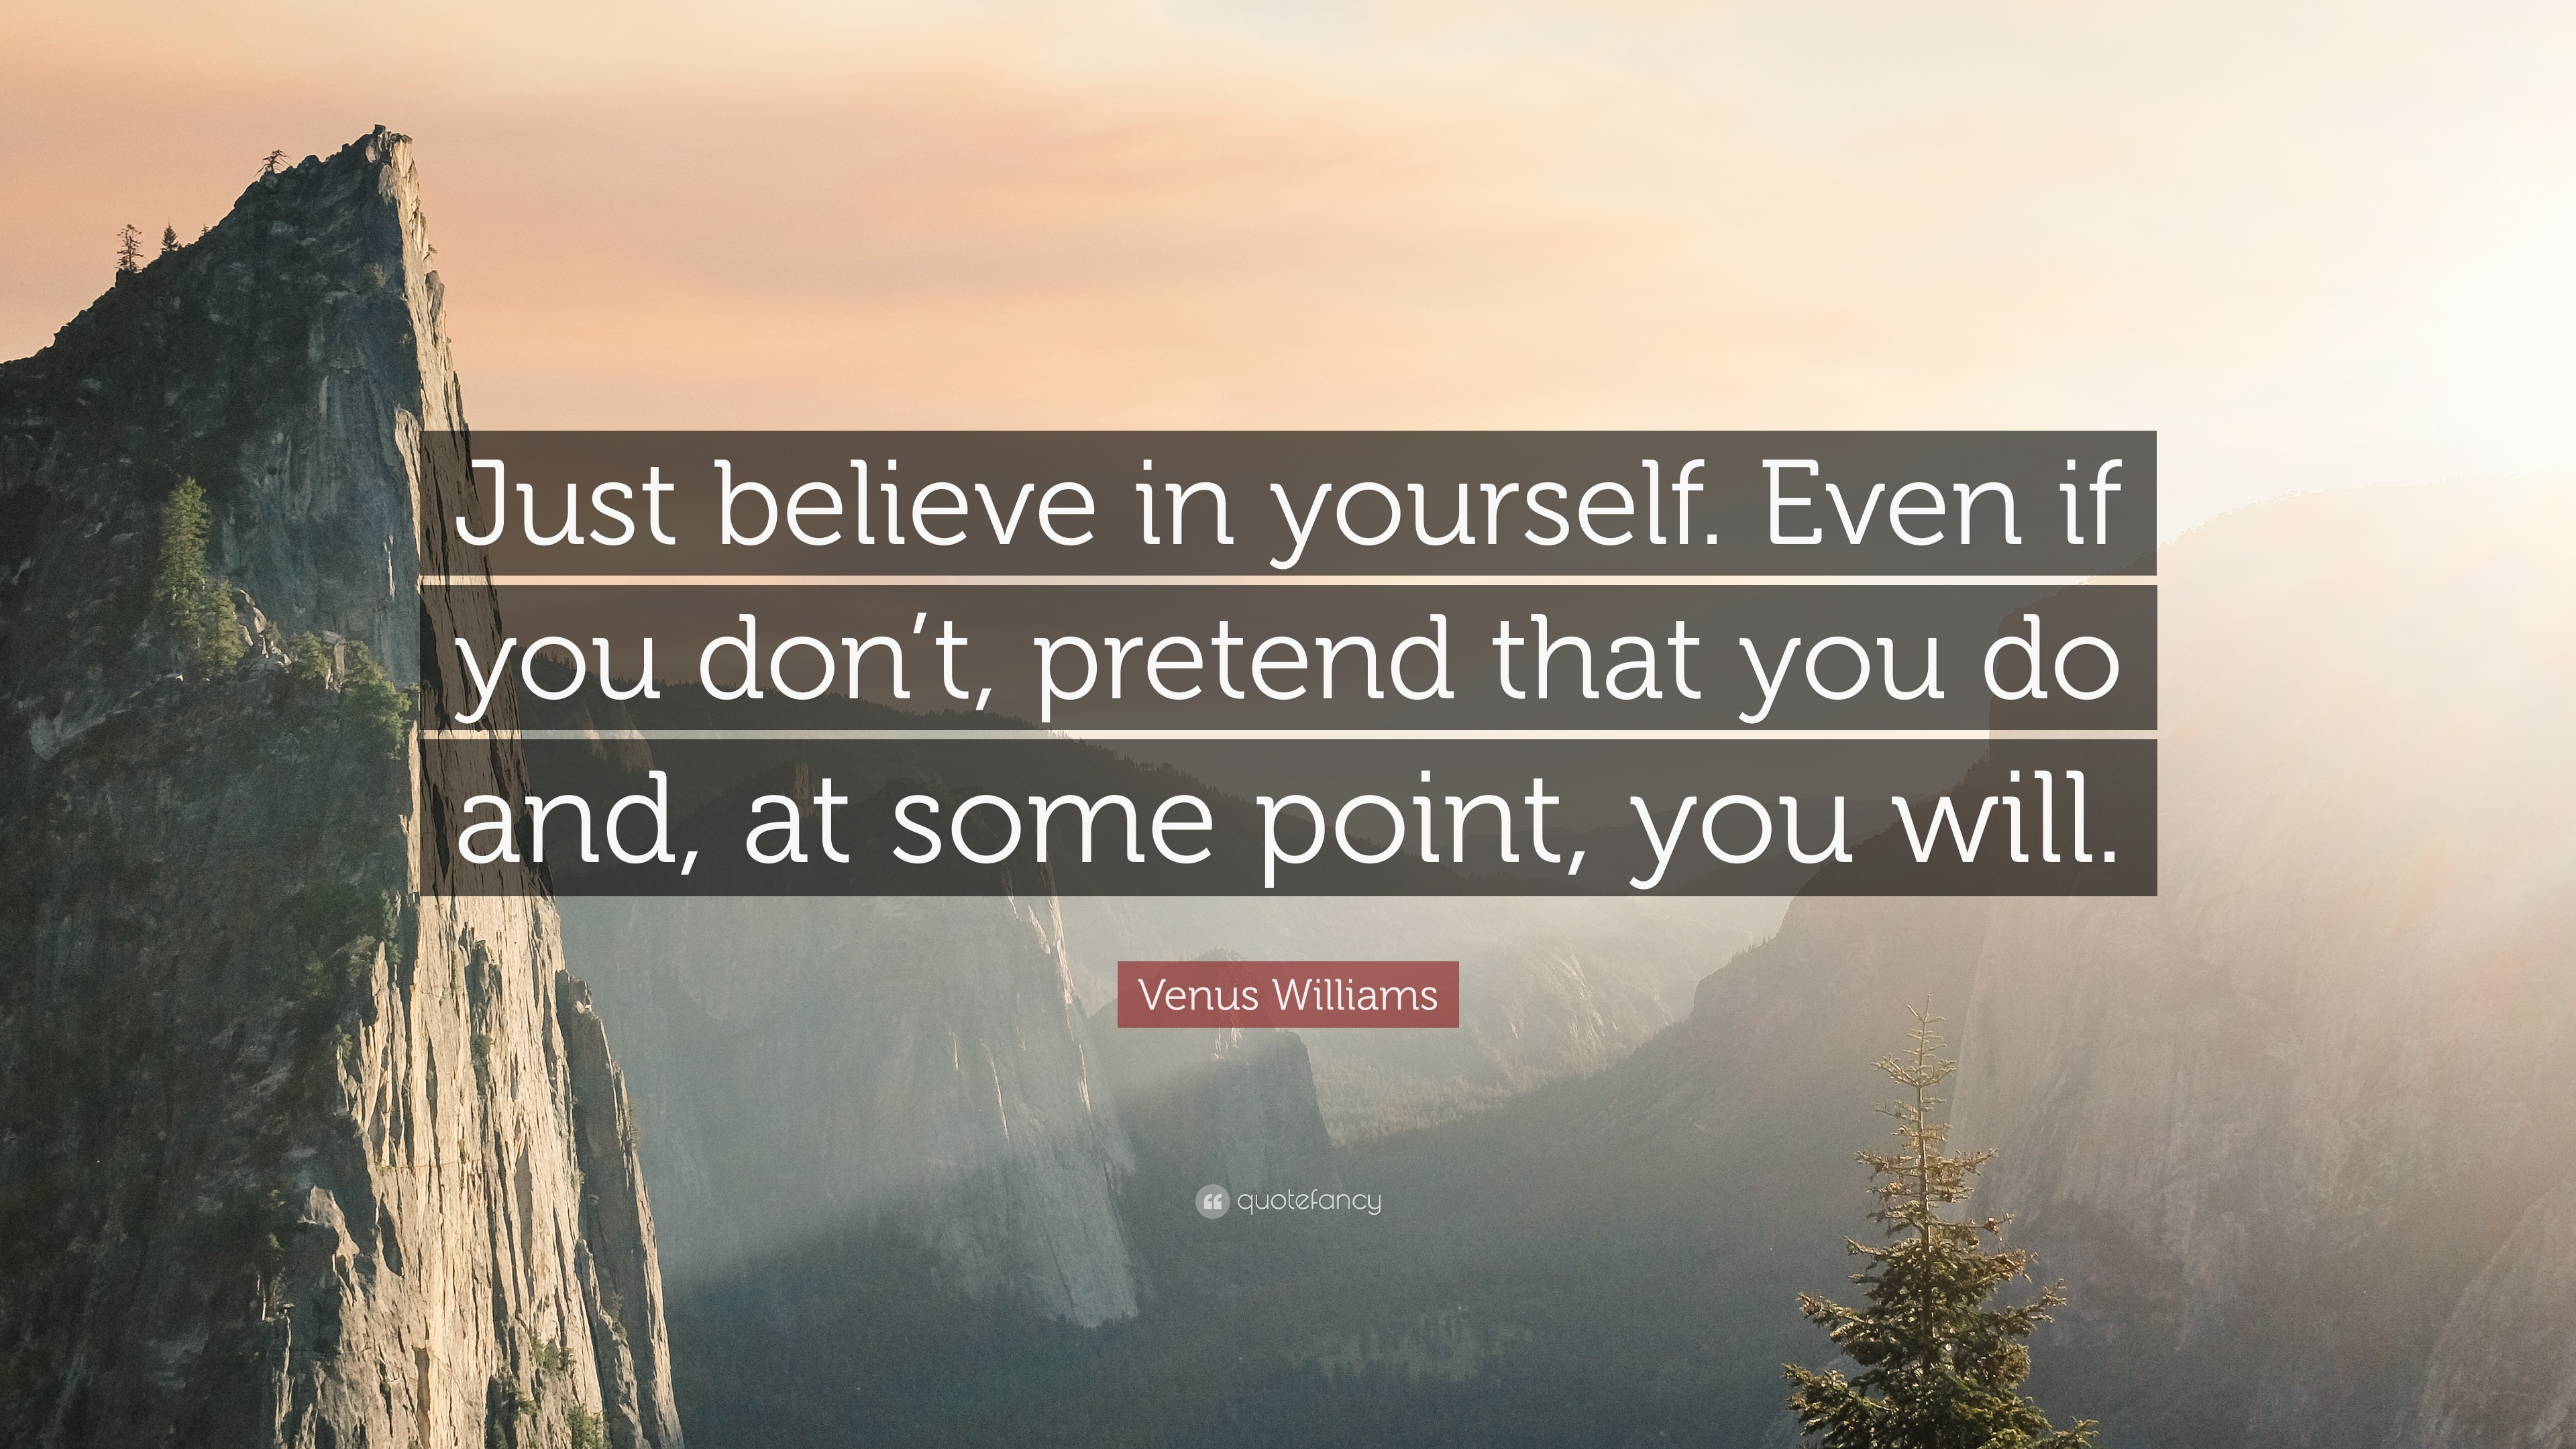 Elegant Venus Williams Quote: U201cJust Believe In Yourself. Even If You Donu0027t